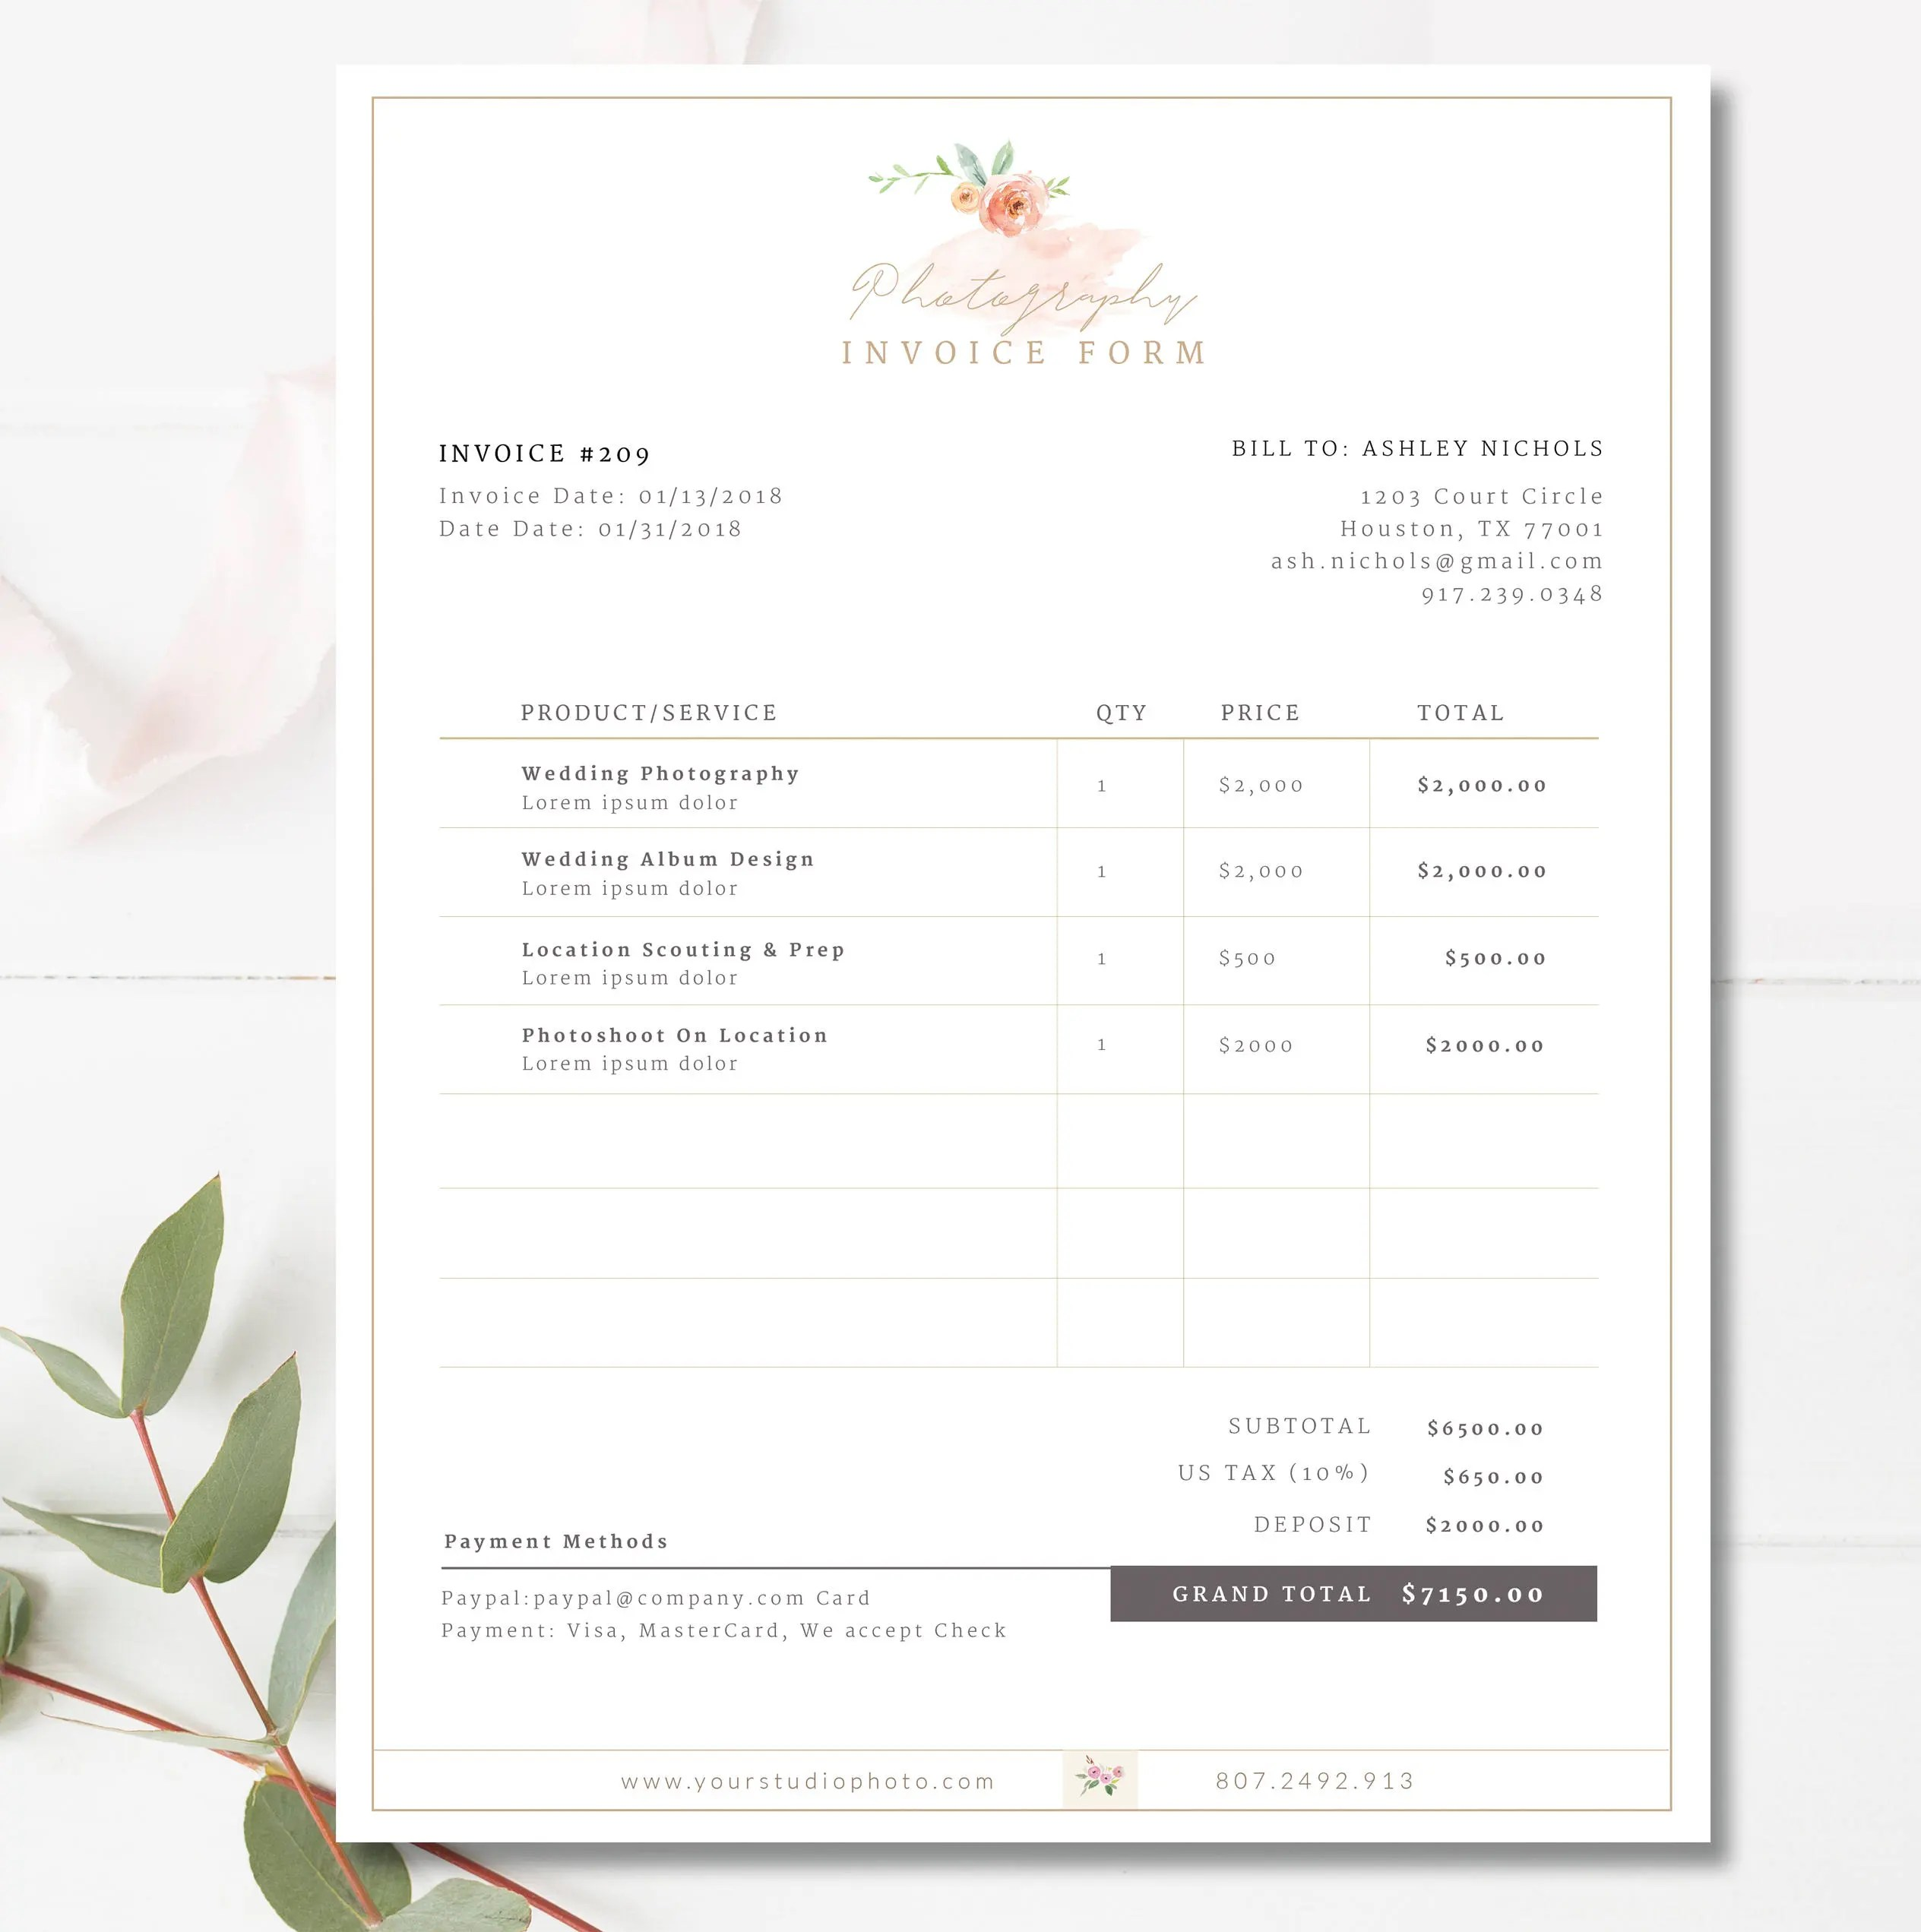 Invoice Template Invoice Design Receipt Photography Invoice Etsy